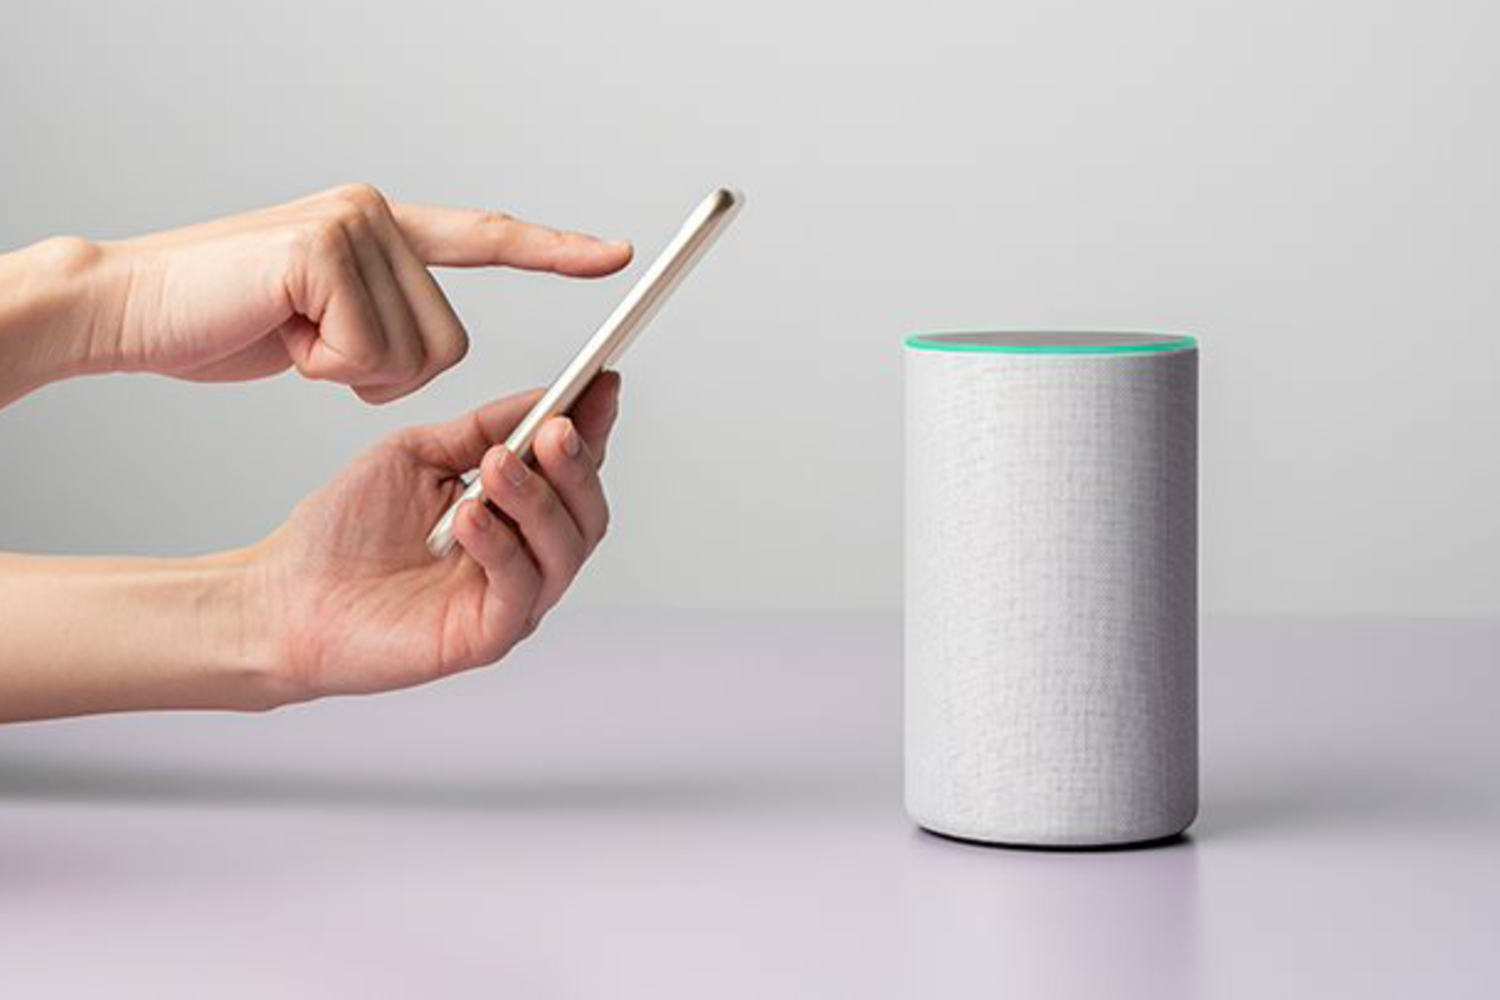 TURTL 2020 - Smart Speakers tendances mondiales